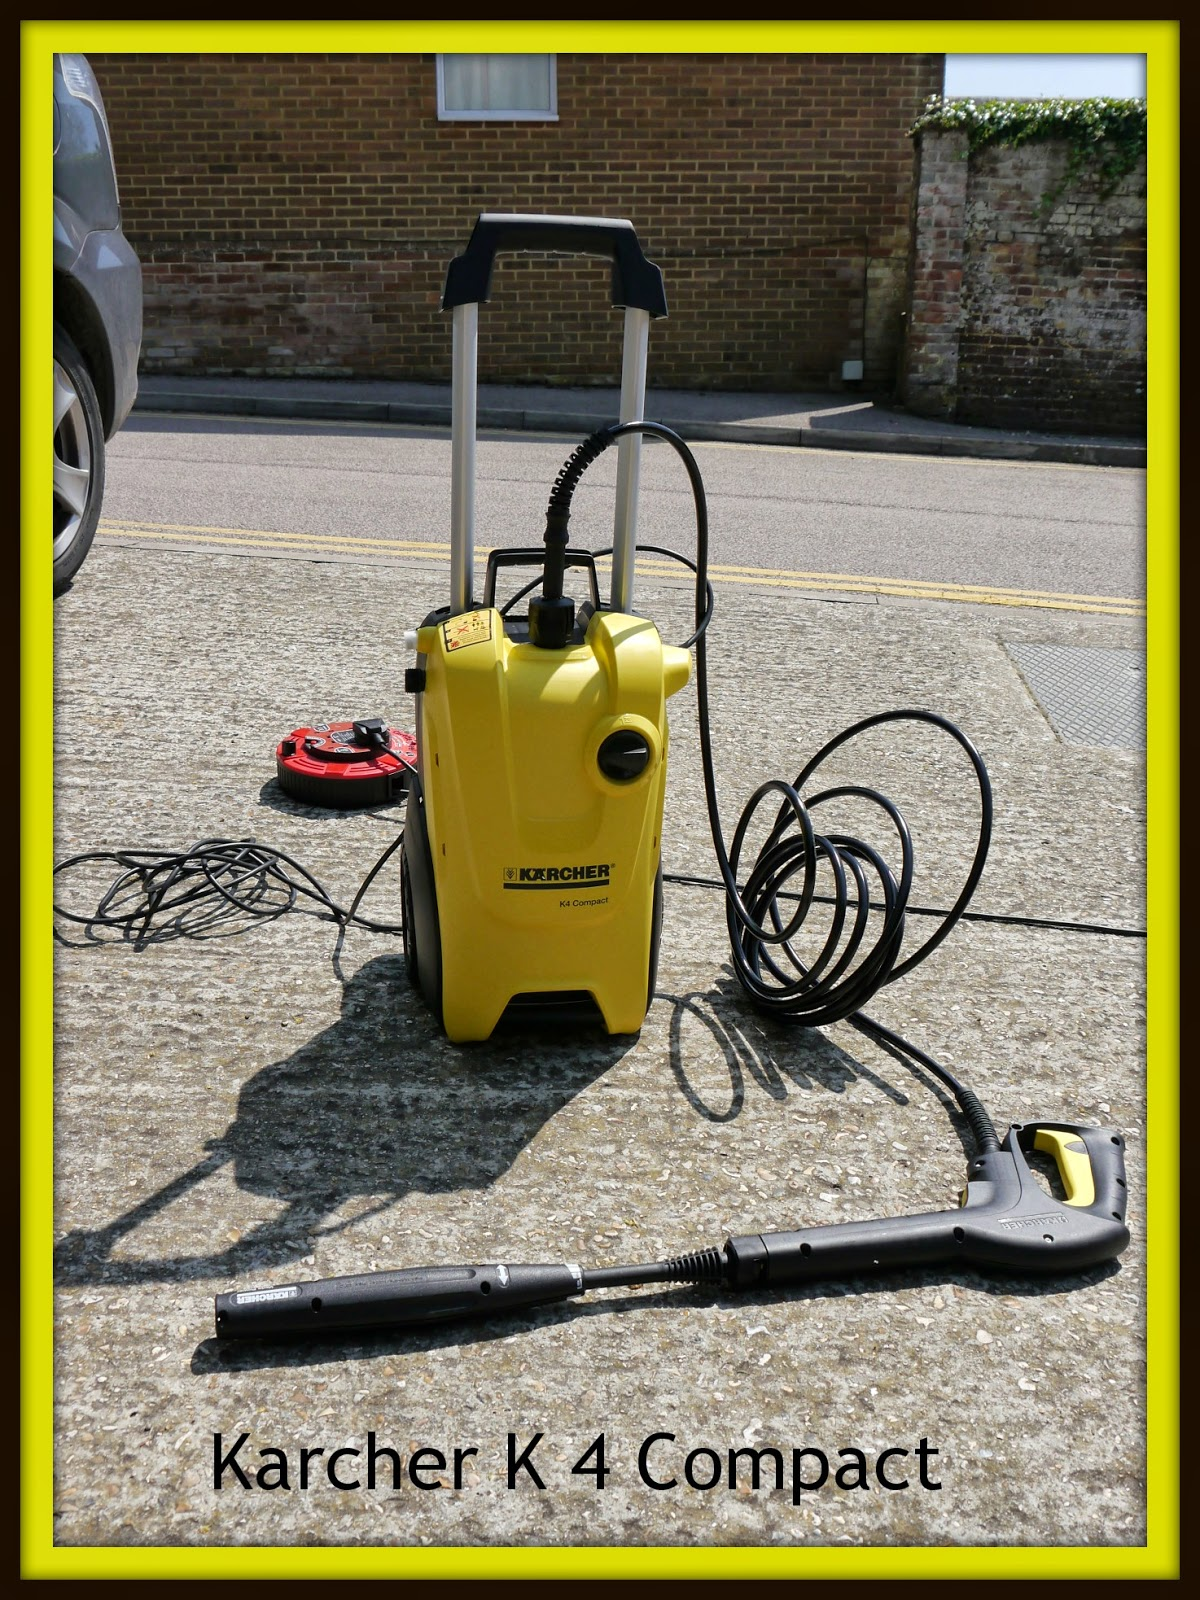 mummy from the heart review karcher k4 compact pressure washer. Black Bedroom Furniture Sets. Home Design Ideas